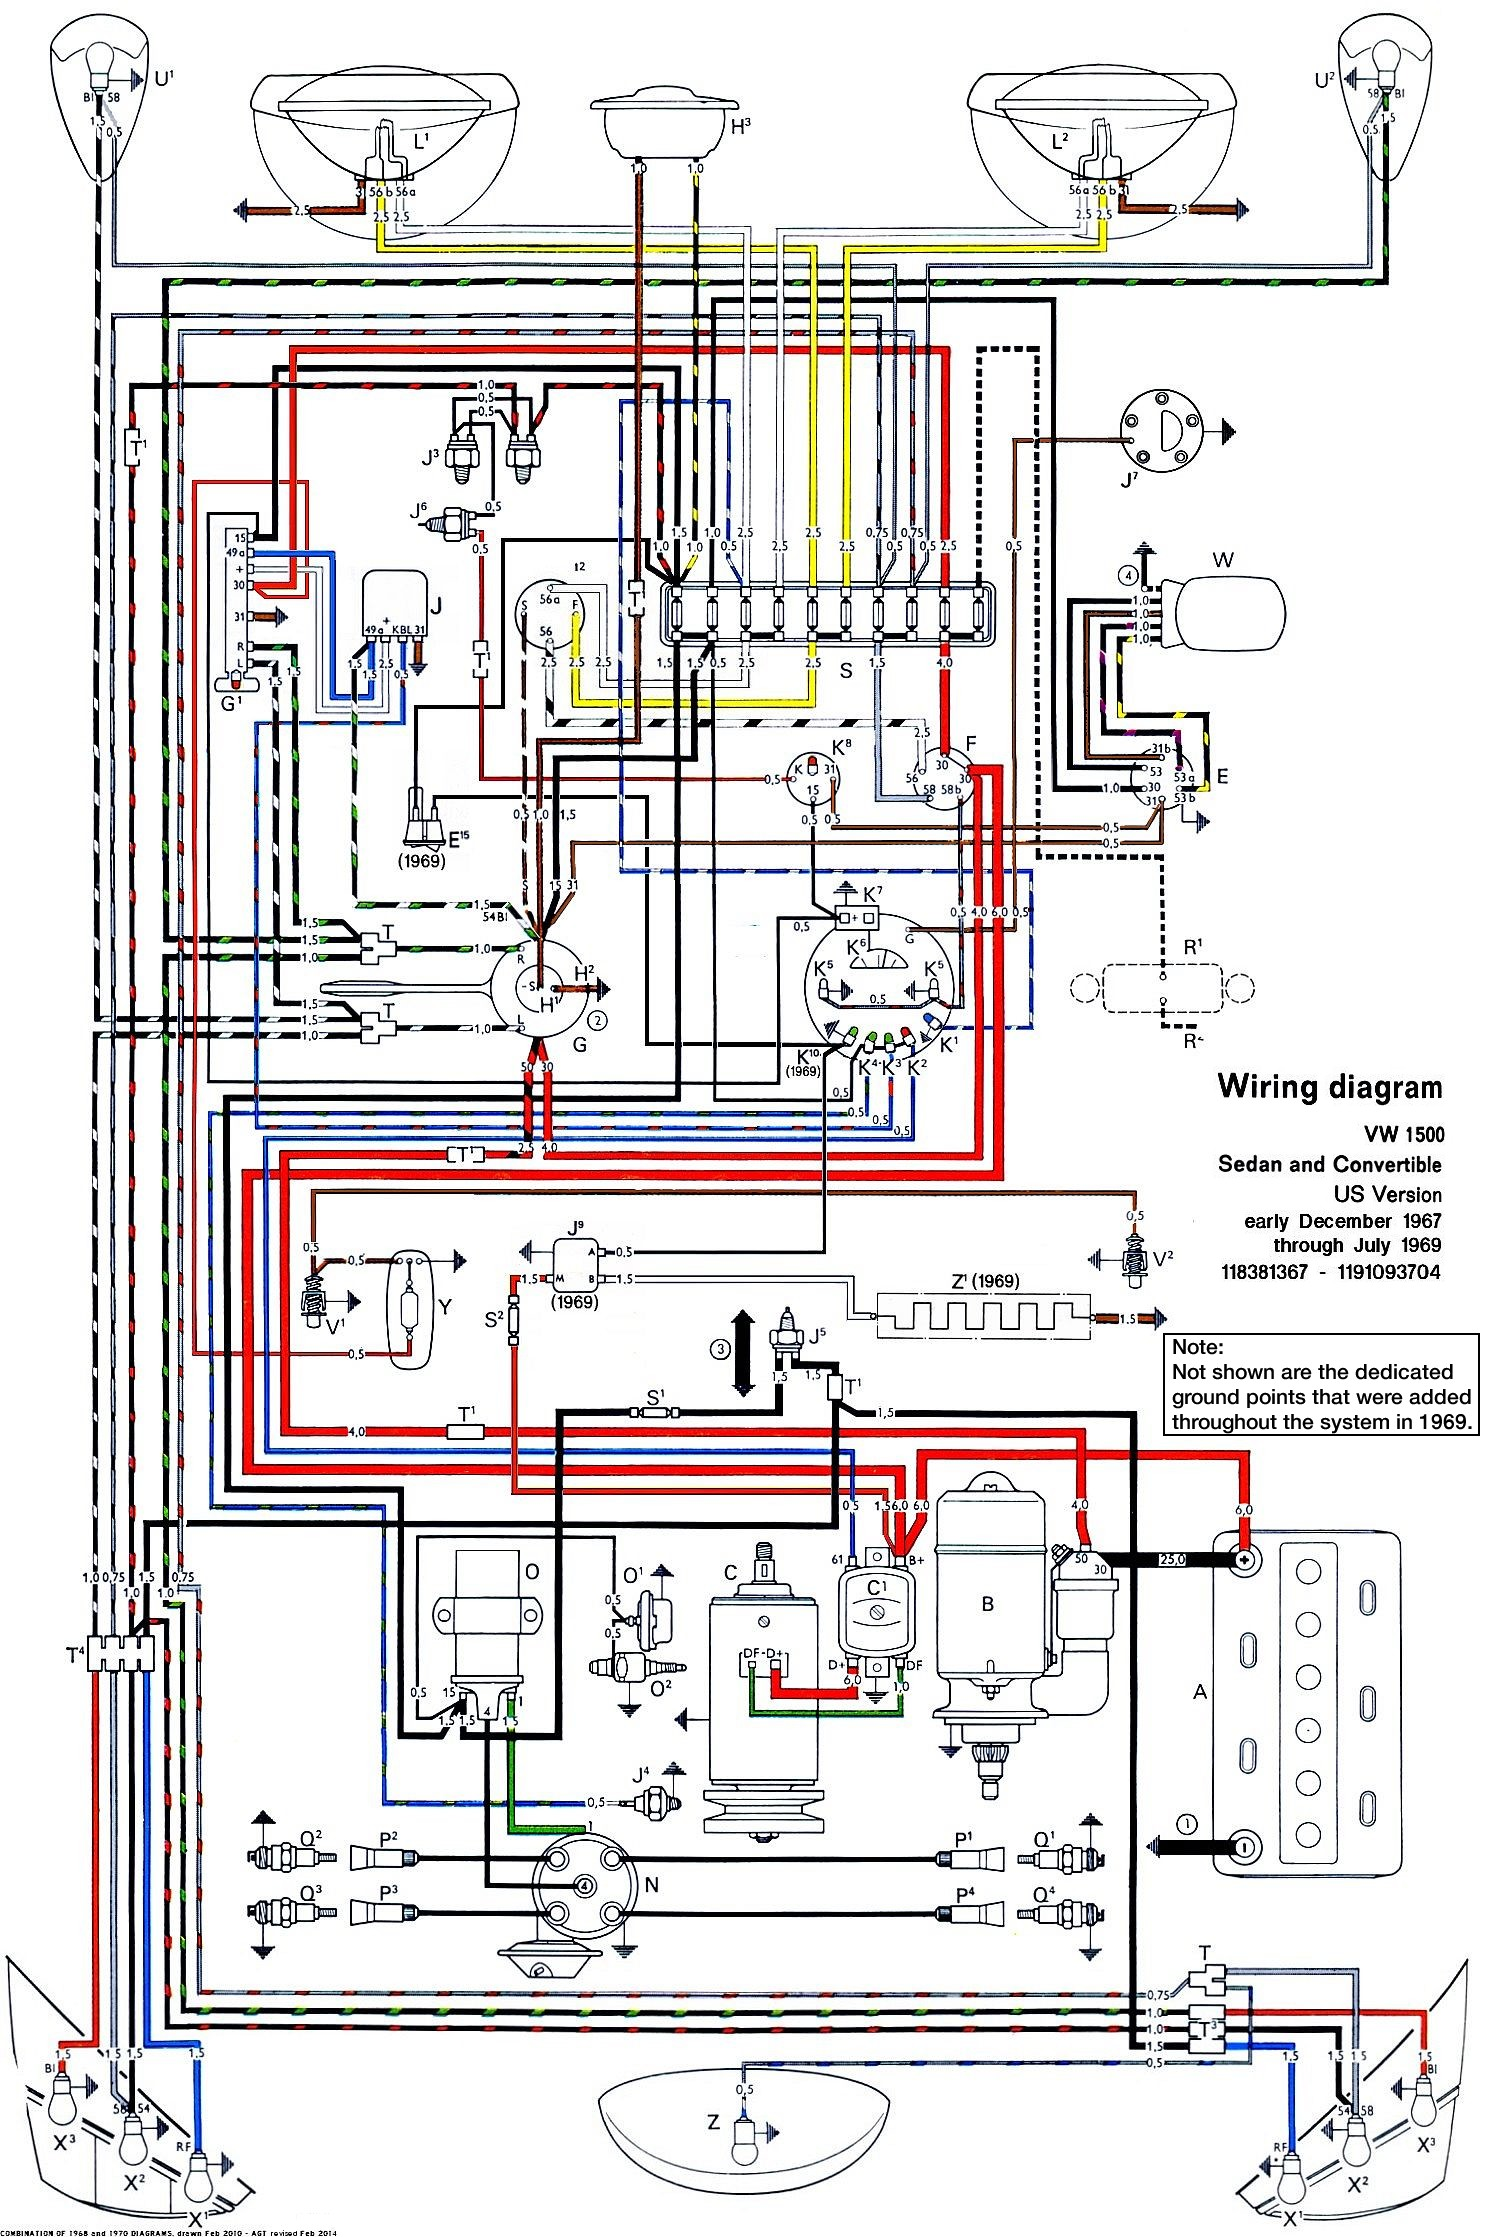 1970 Vw Ignition Wiring Diagram - Wiring Diagram Article W Super Beetle Wiring Diagram For Distributor on